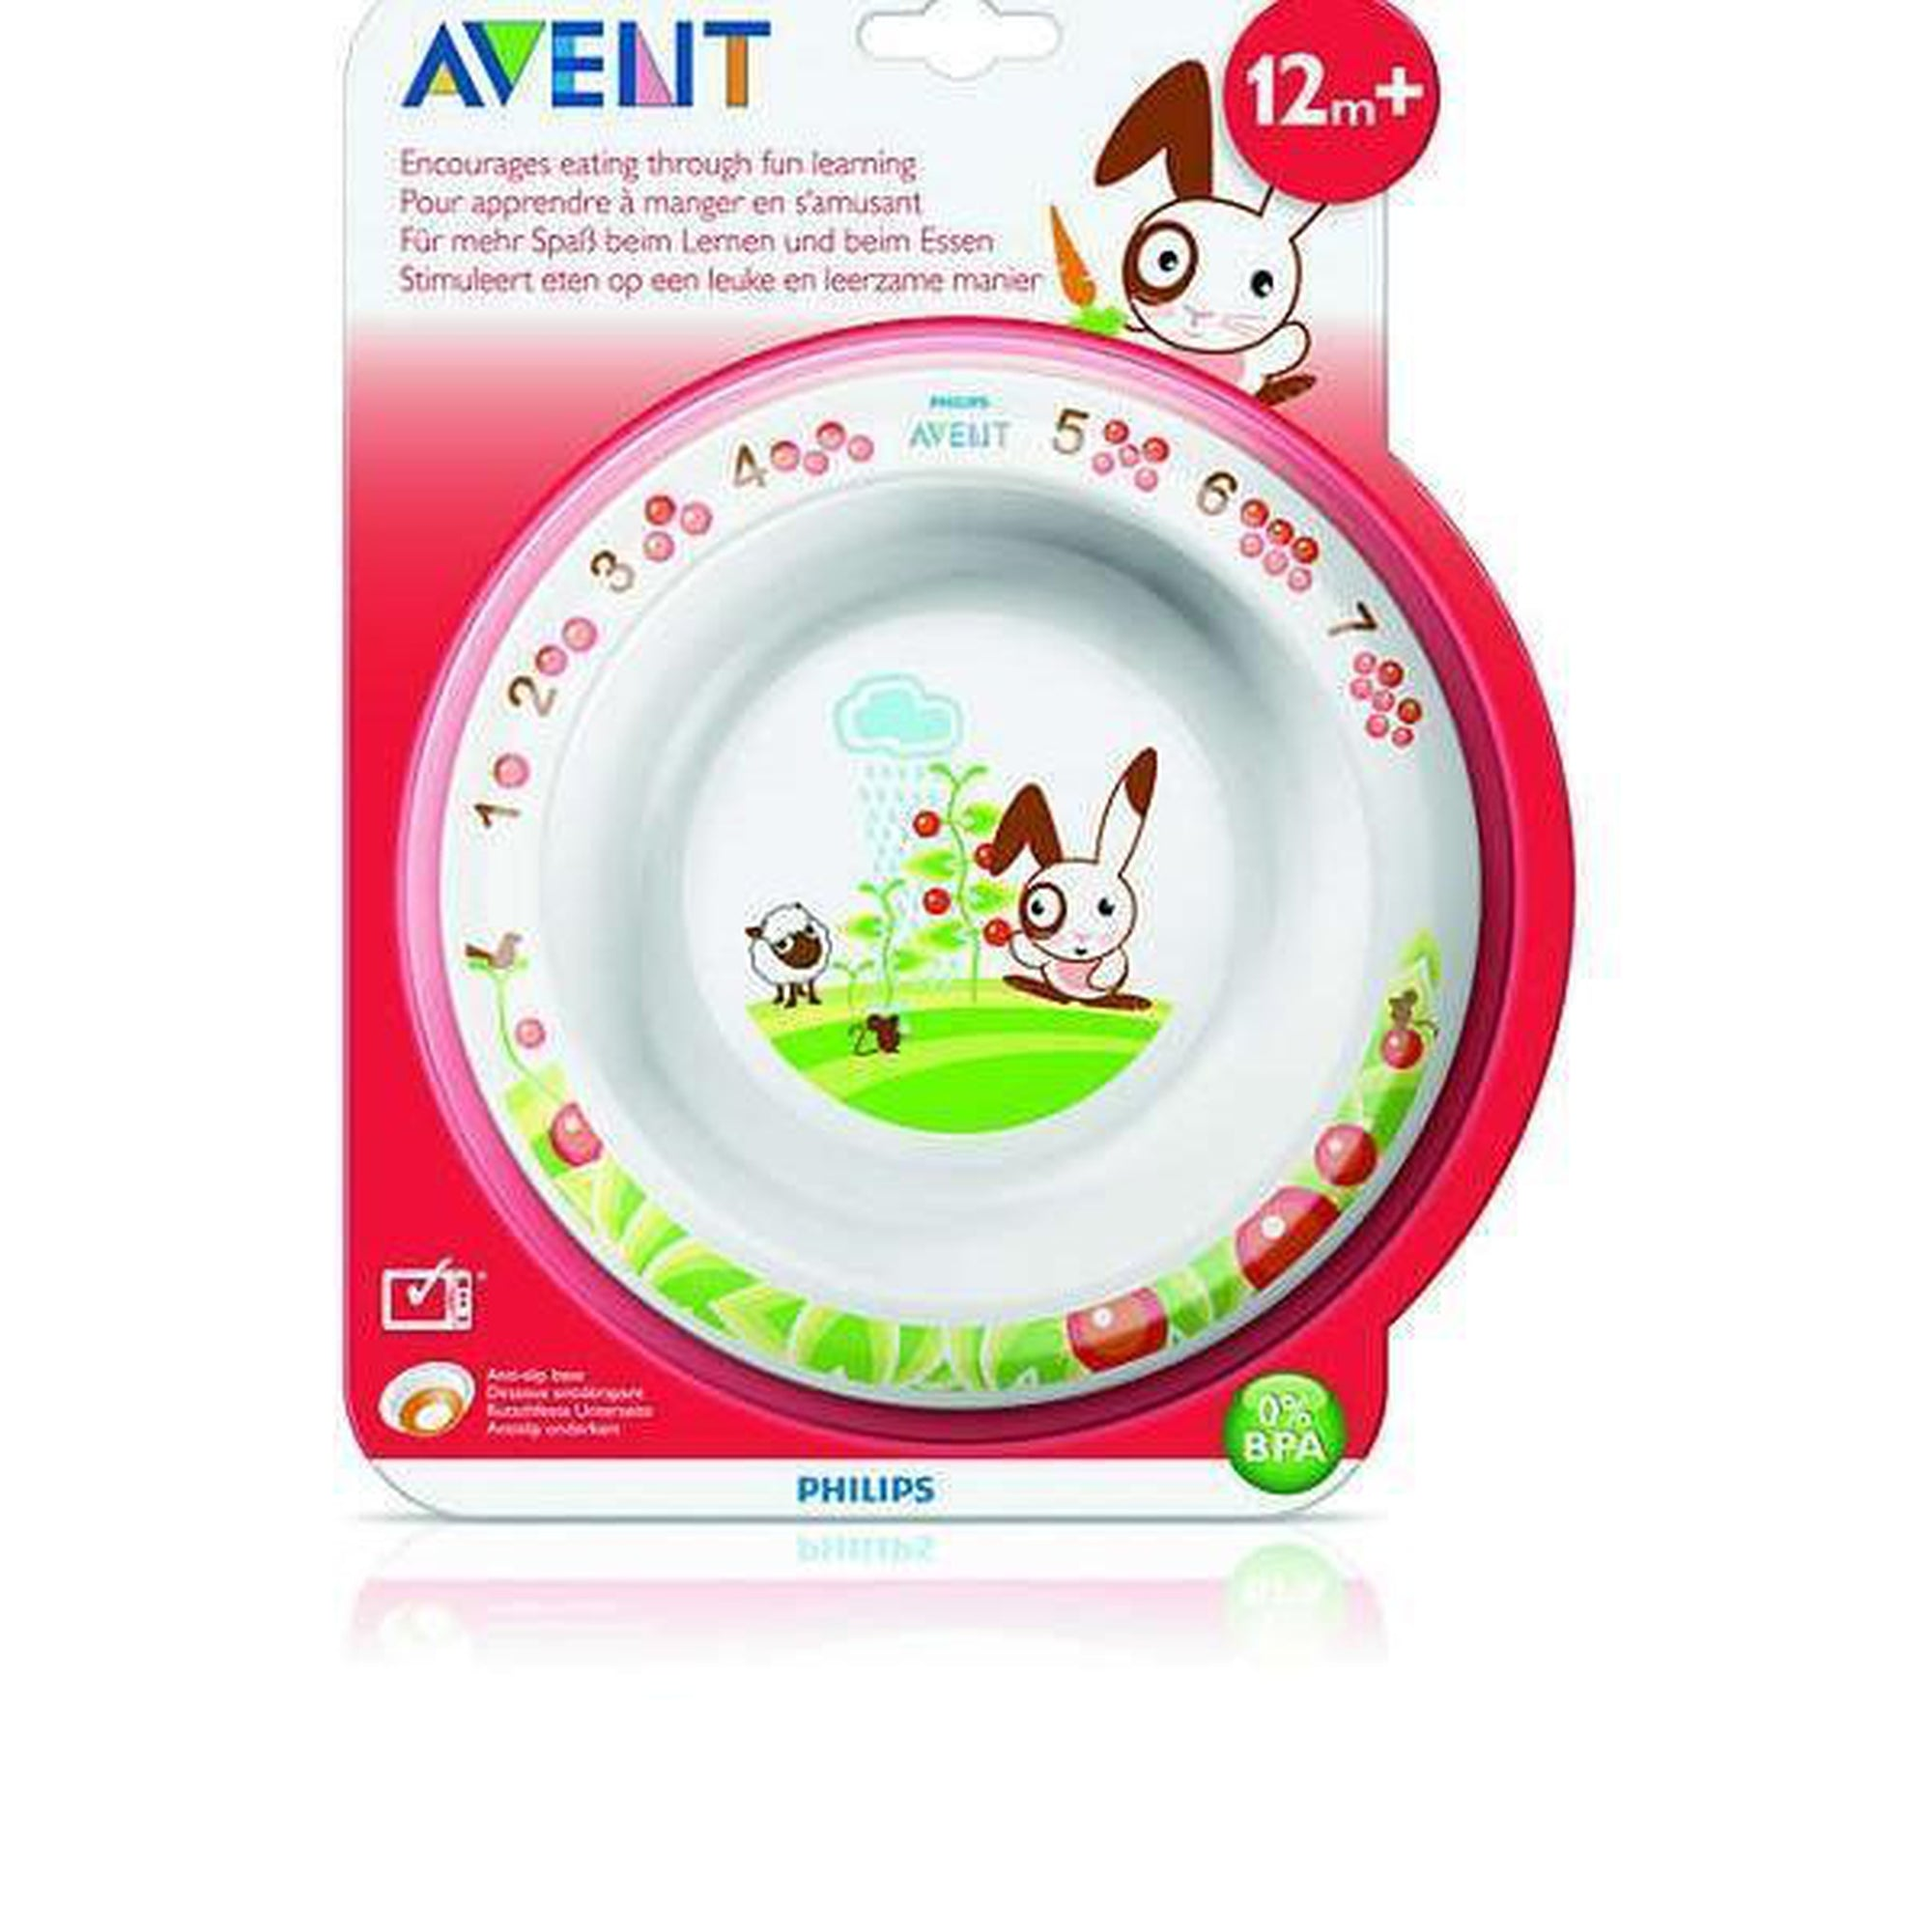 Avent Toddler Bowl Big 12m+-Tableware Cutlery and Bibs-Mother and Baby Shop Kenya's #1 Online Baby Shop